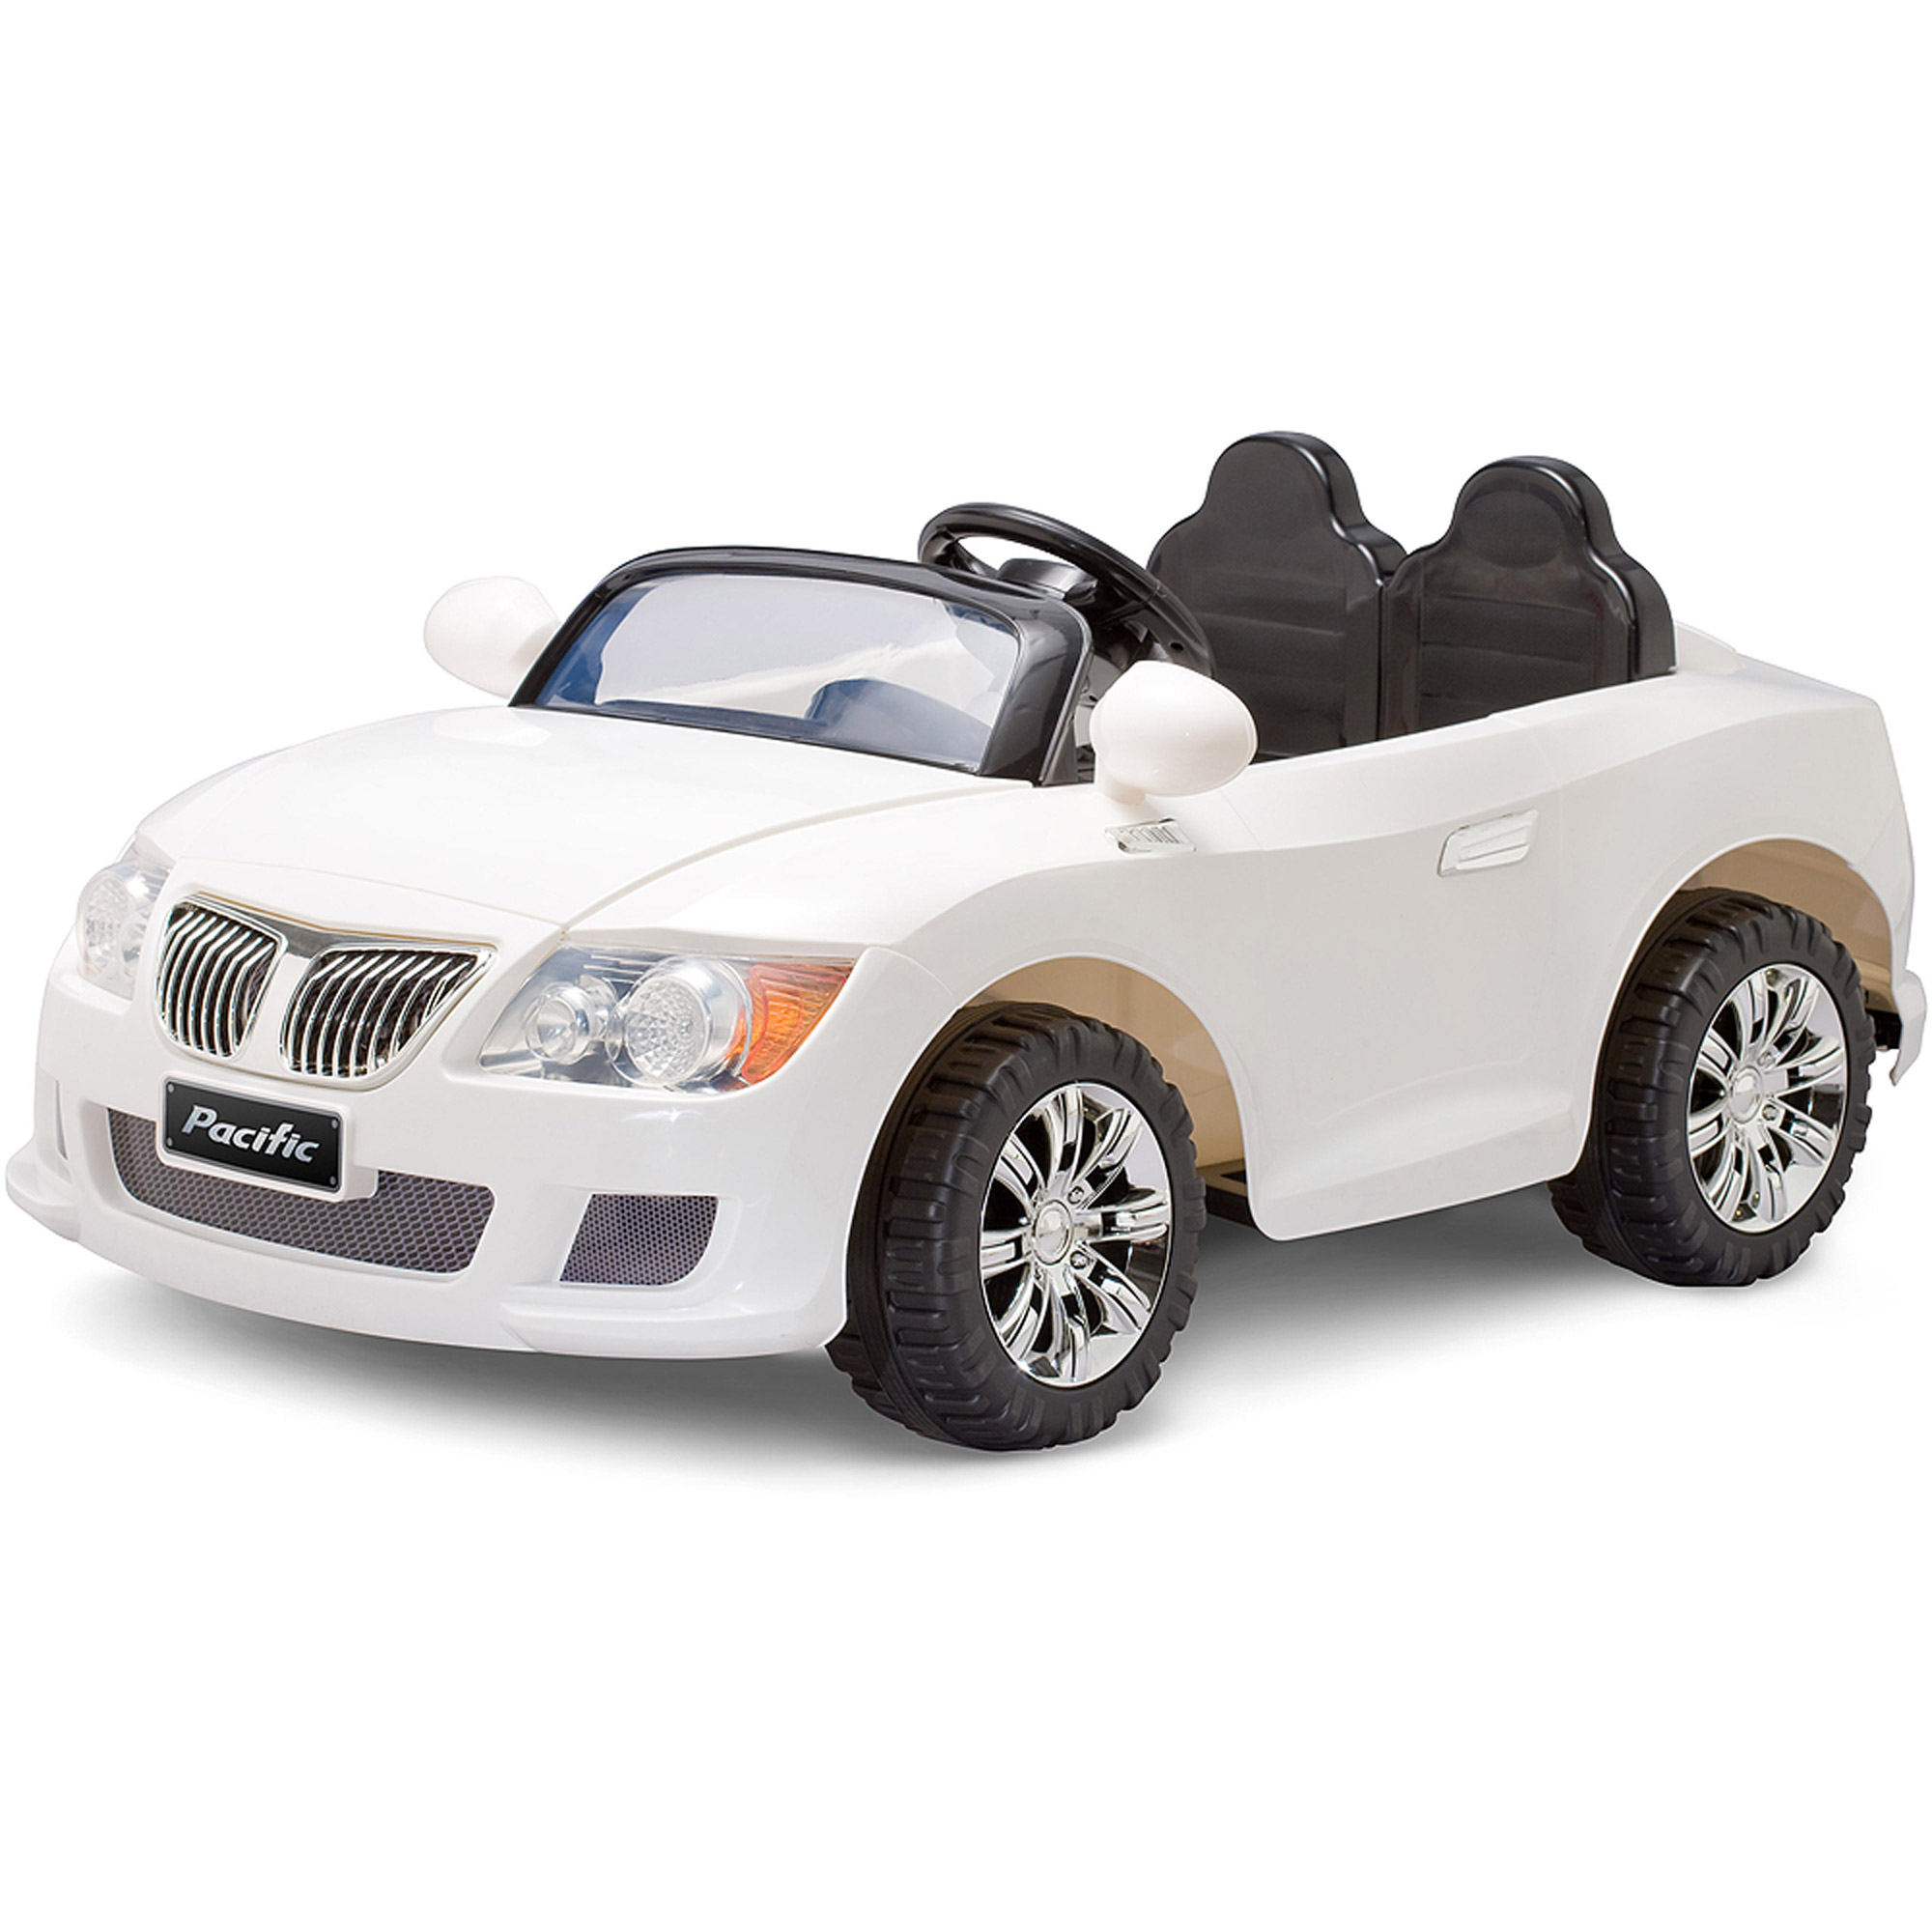 Children's Battery Powered Cars Lovely Pacific Cycle Convertible Sports Car 12v Battery Powered White